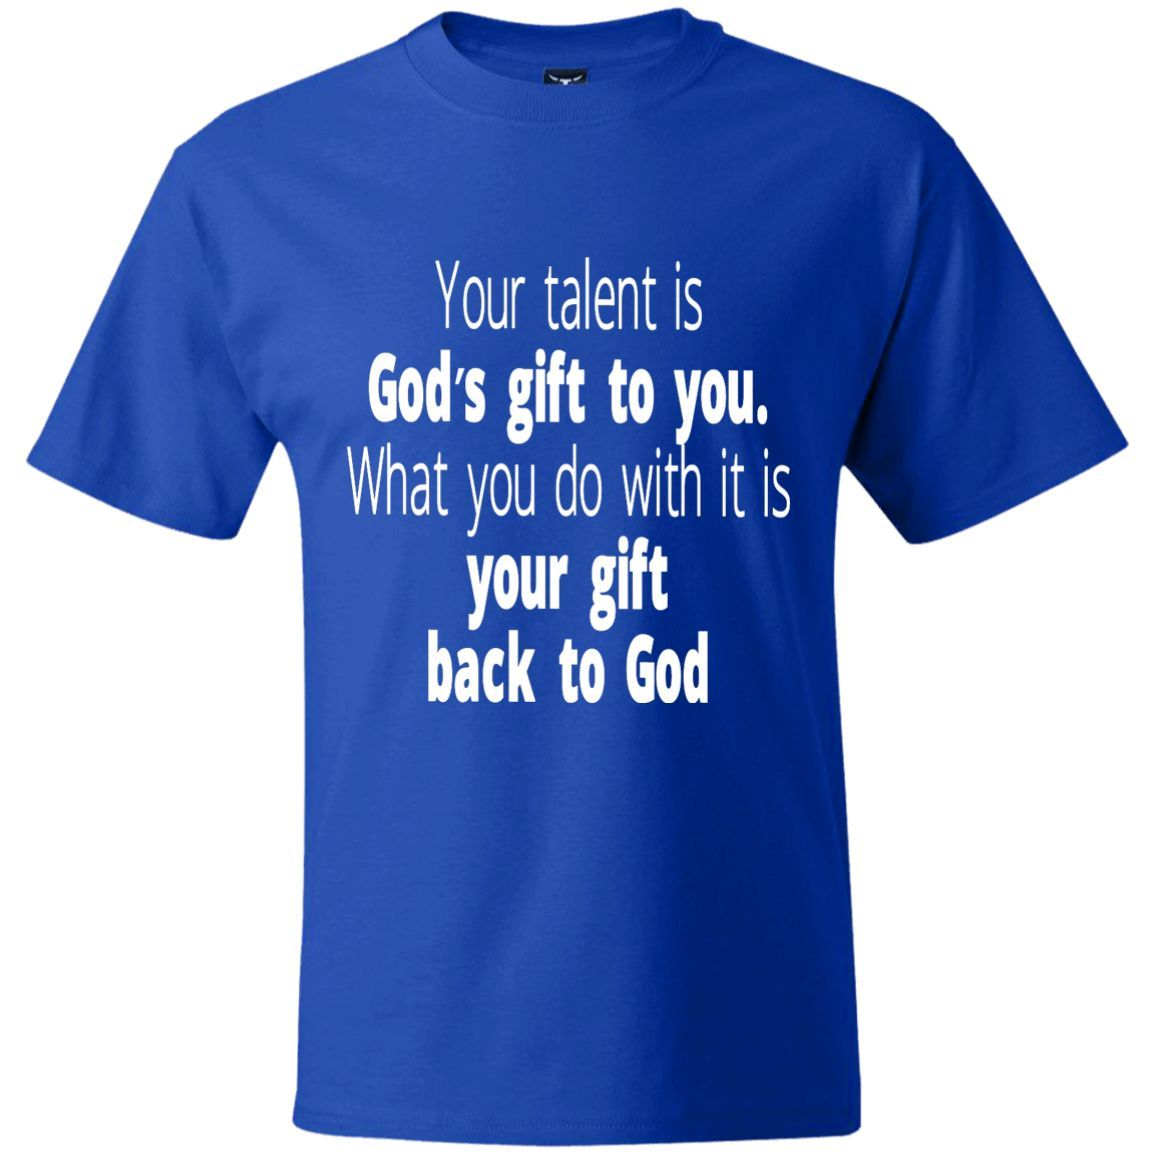 Hanes Beefy Graphic Tee - Your talent is God's gift